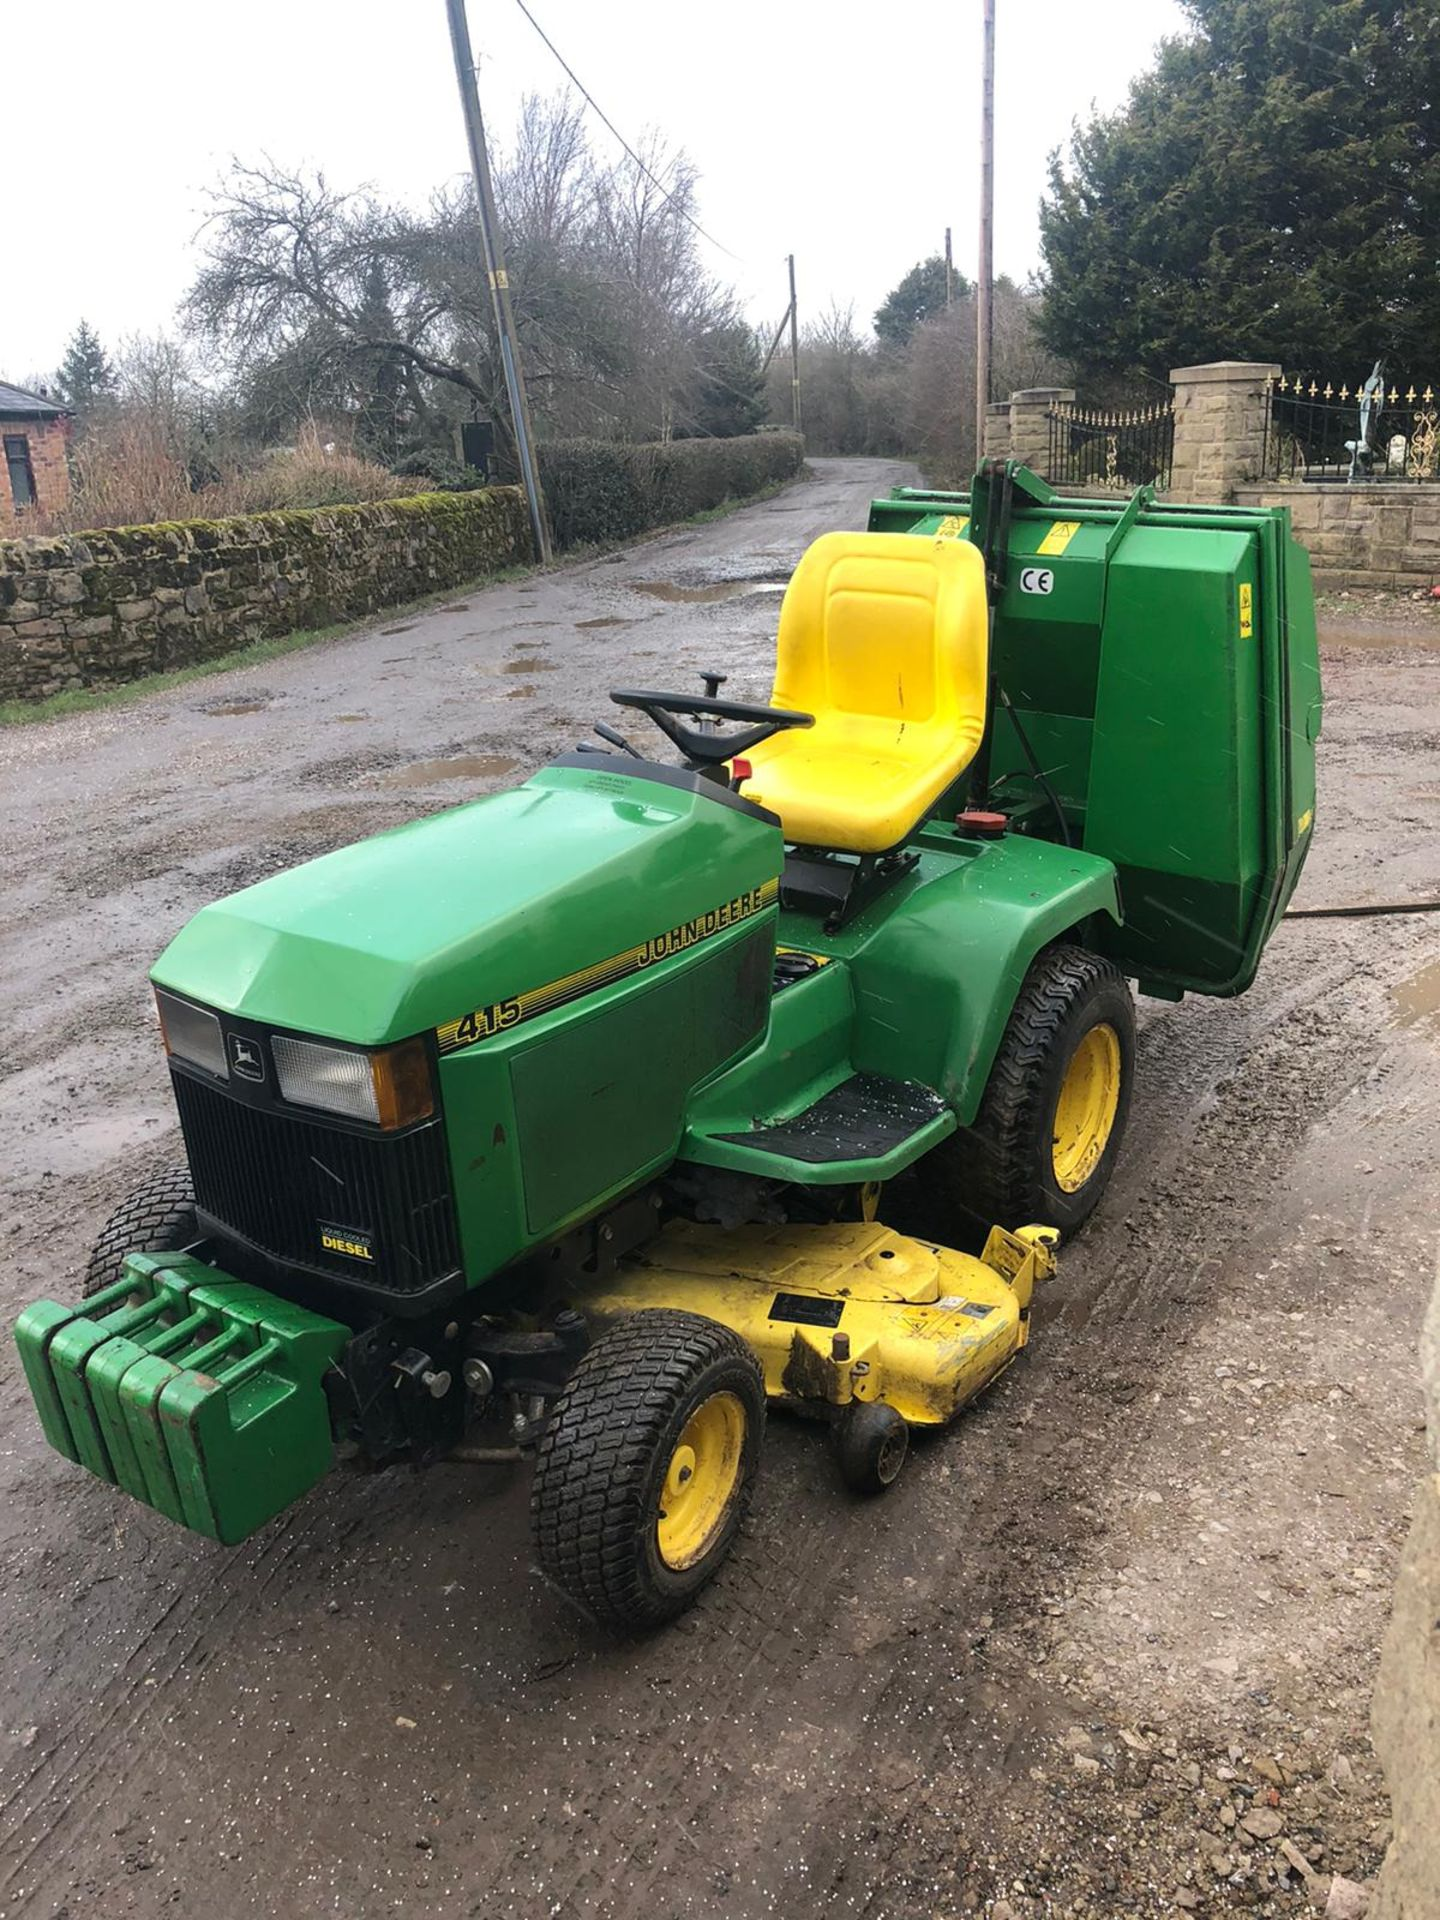 Los 39 - JOHN DEERE 415 RIDE ON LAWN MOWER, RUNS & WORKS, CUTS AND COLLECTS WELL *NO VAT*